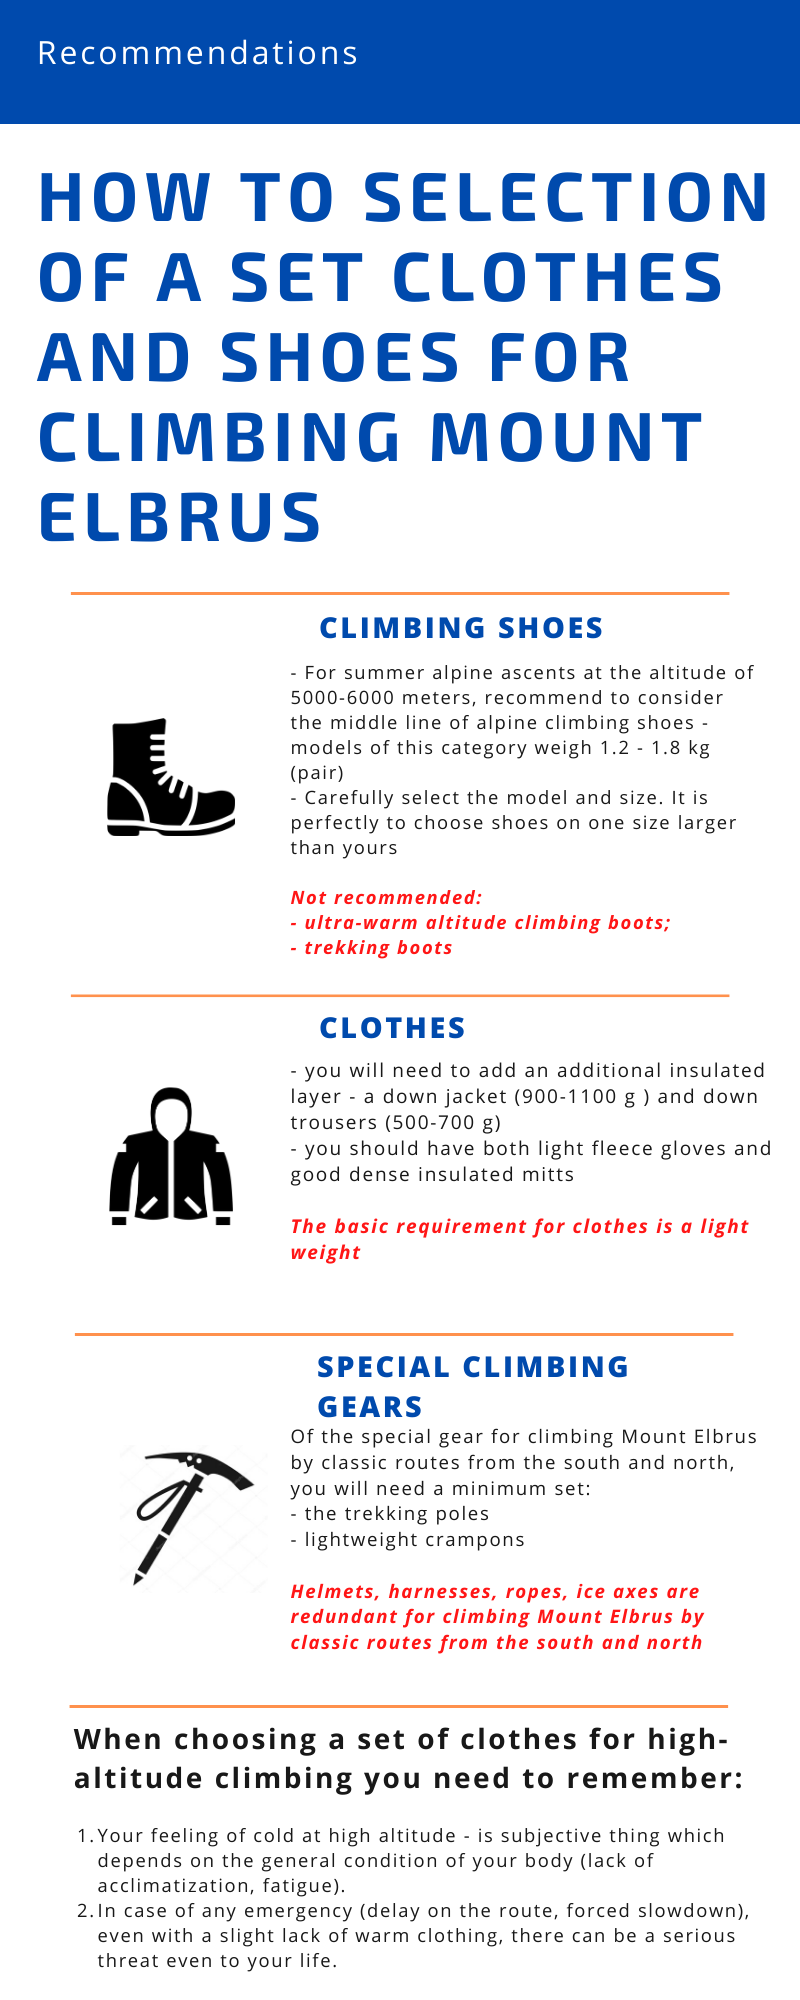 Clothes and footwear for climbing Mount Elbrus